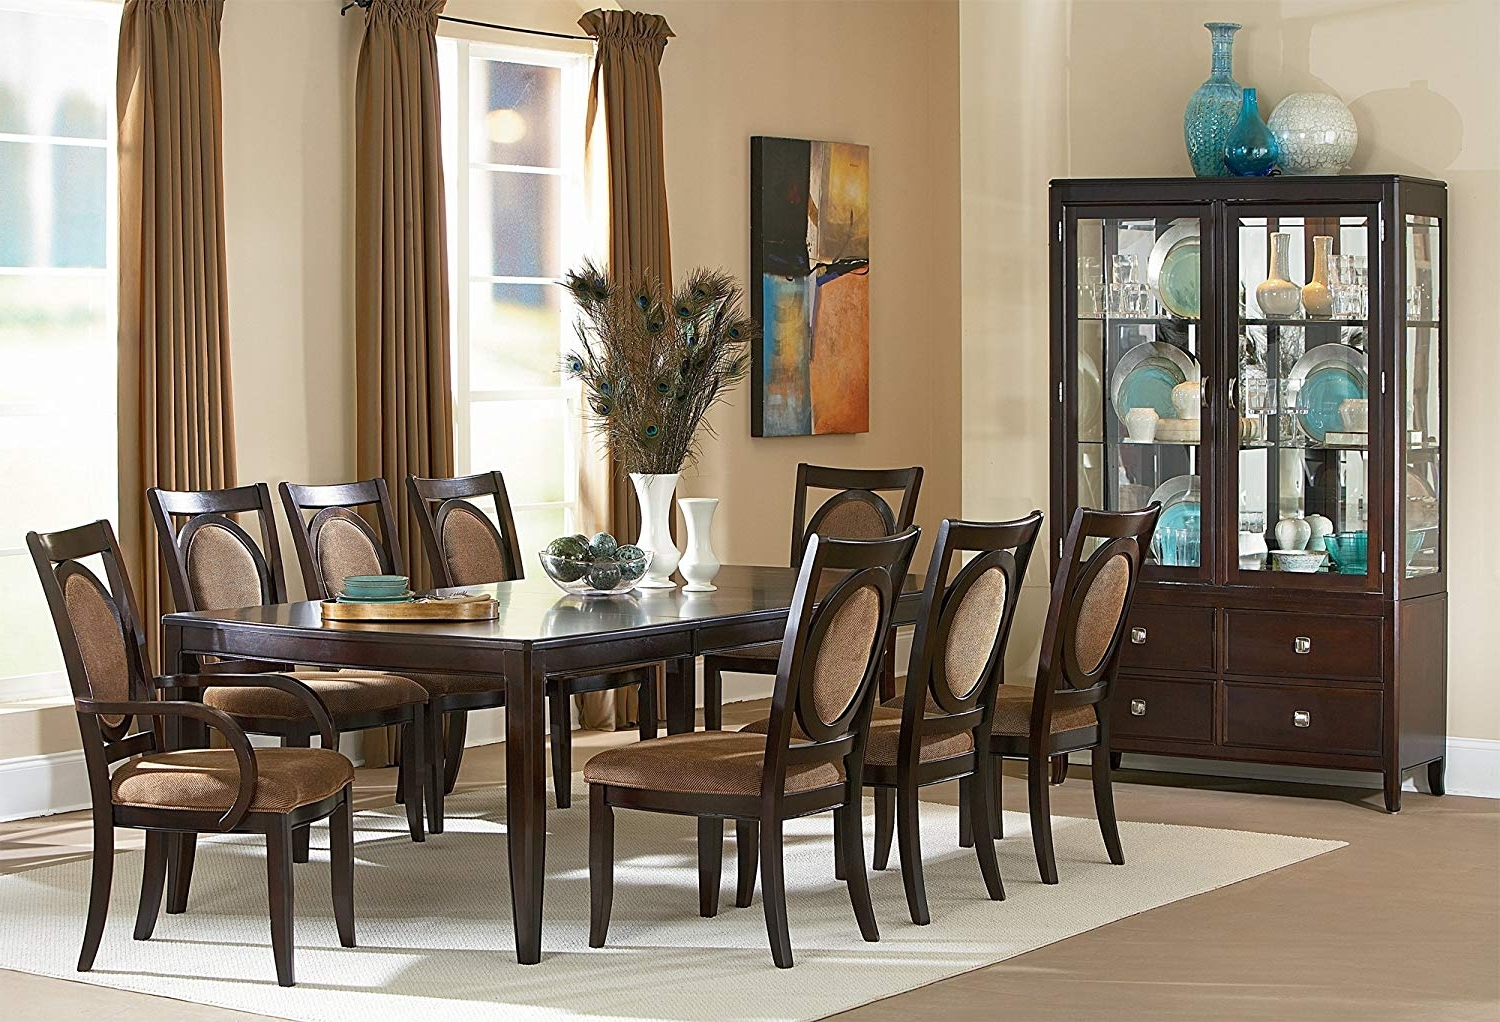 Dining Tables Set For 8 Intended For Well Known Amazon – Steve Silver Company Montblanc Table With Two 18 (Gallery 4 of 25)